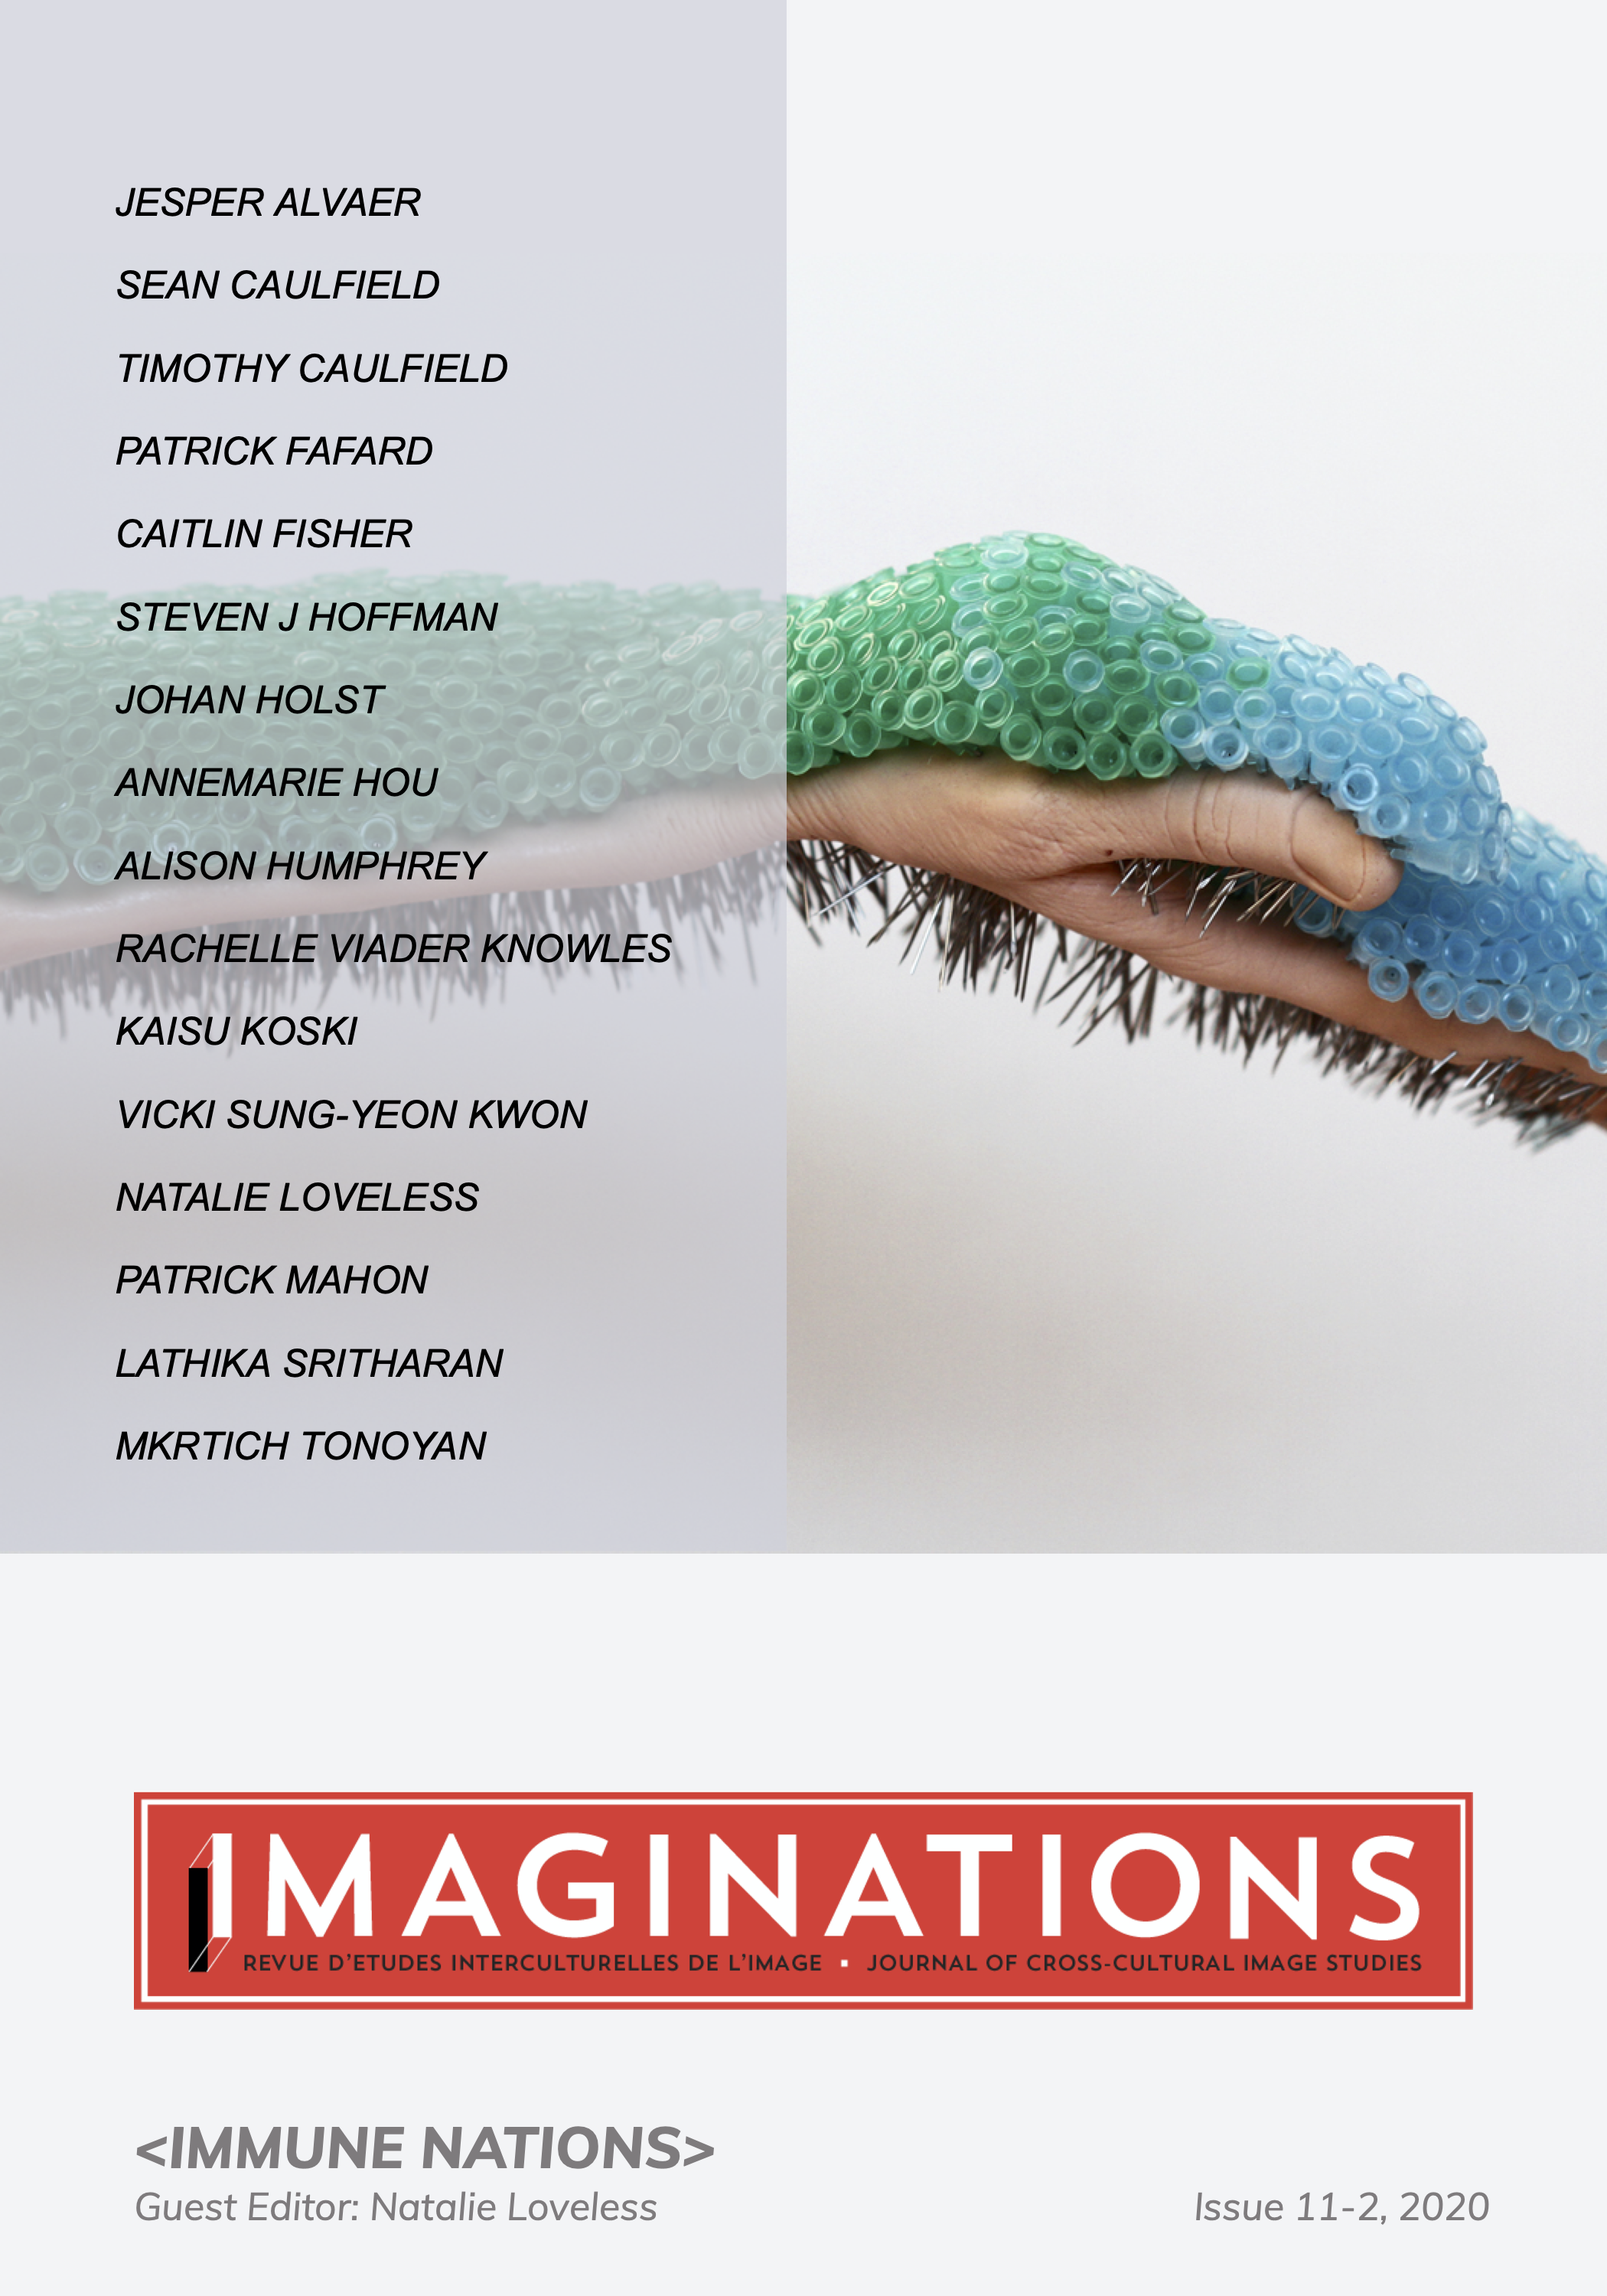 Imaginations 11-2 Cover: Kaisu Koski, Injection Simulator (2015)